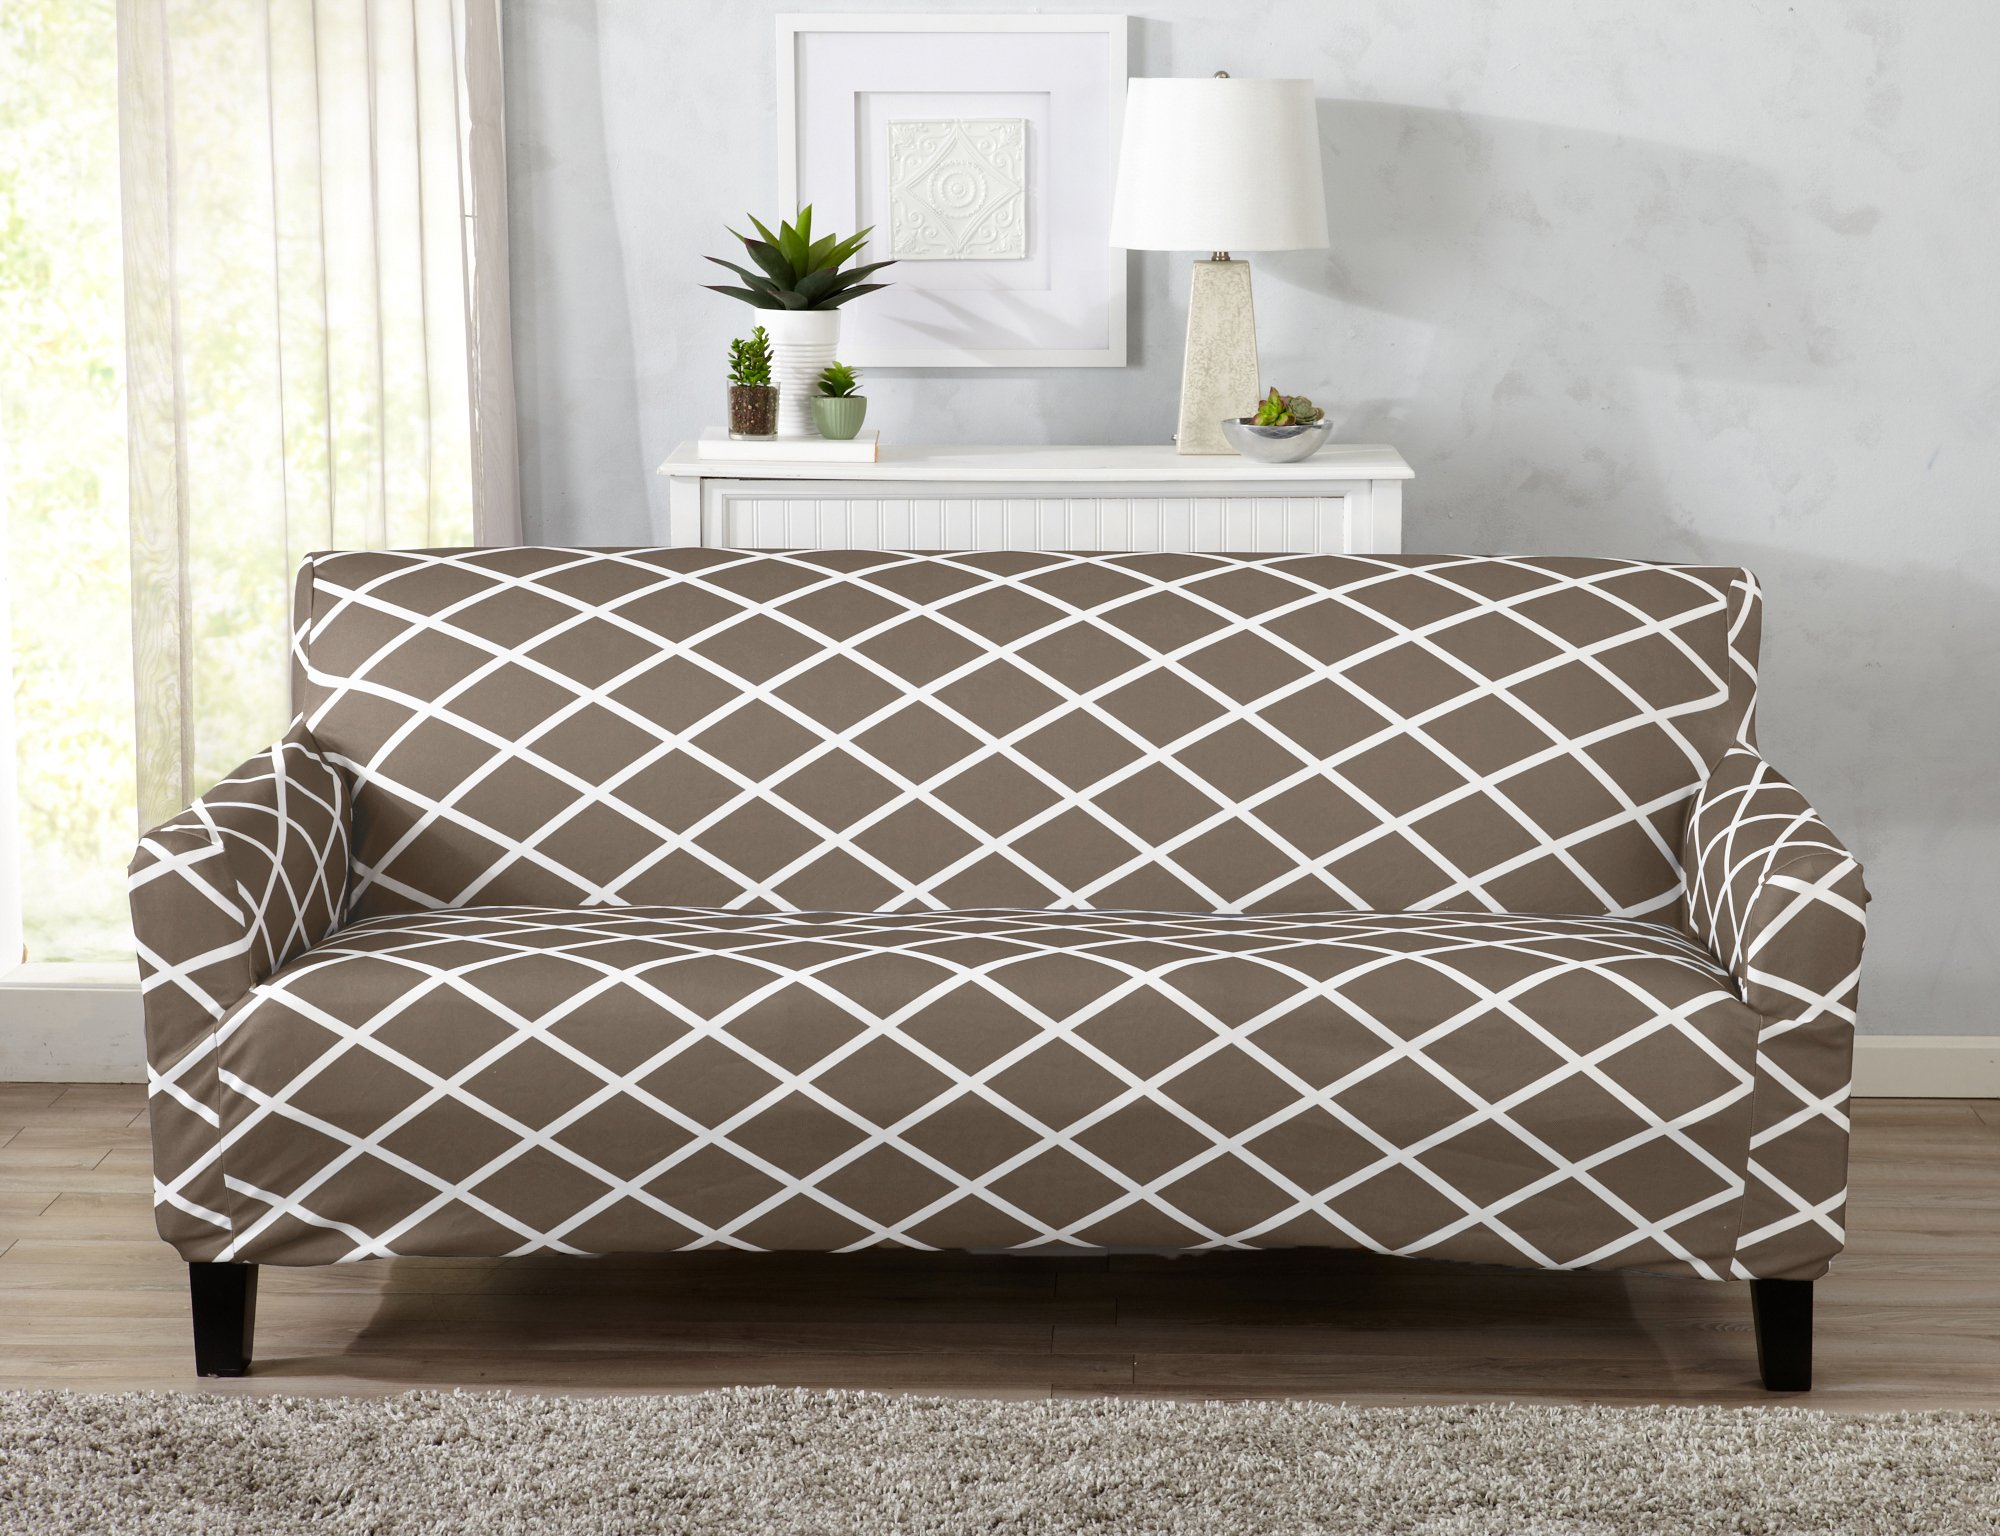 Great Bay Home Strapless Stretch Printed Slipcover Couch Cover, Stain and Spill Resistant. Tori Collection (Sofa - Mocha)